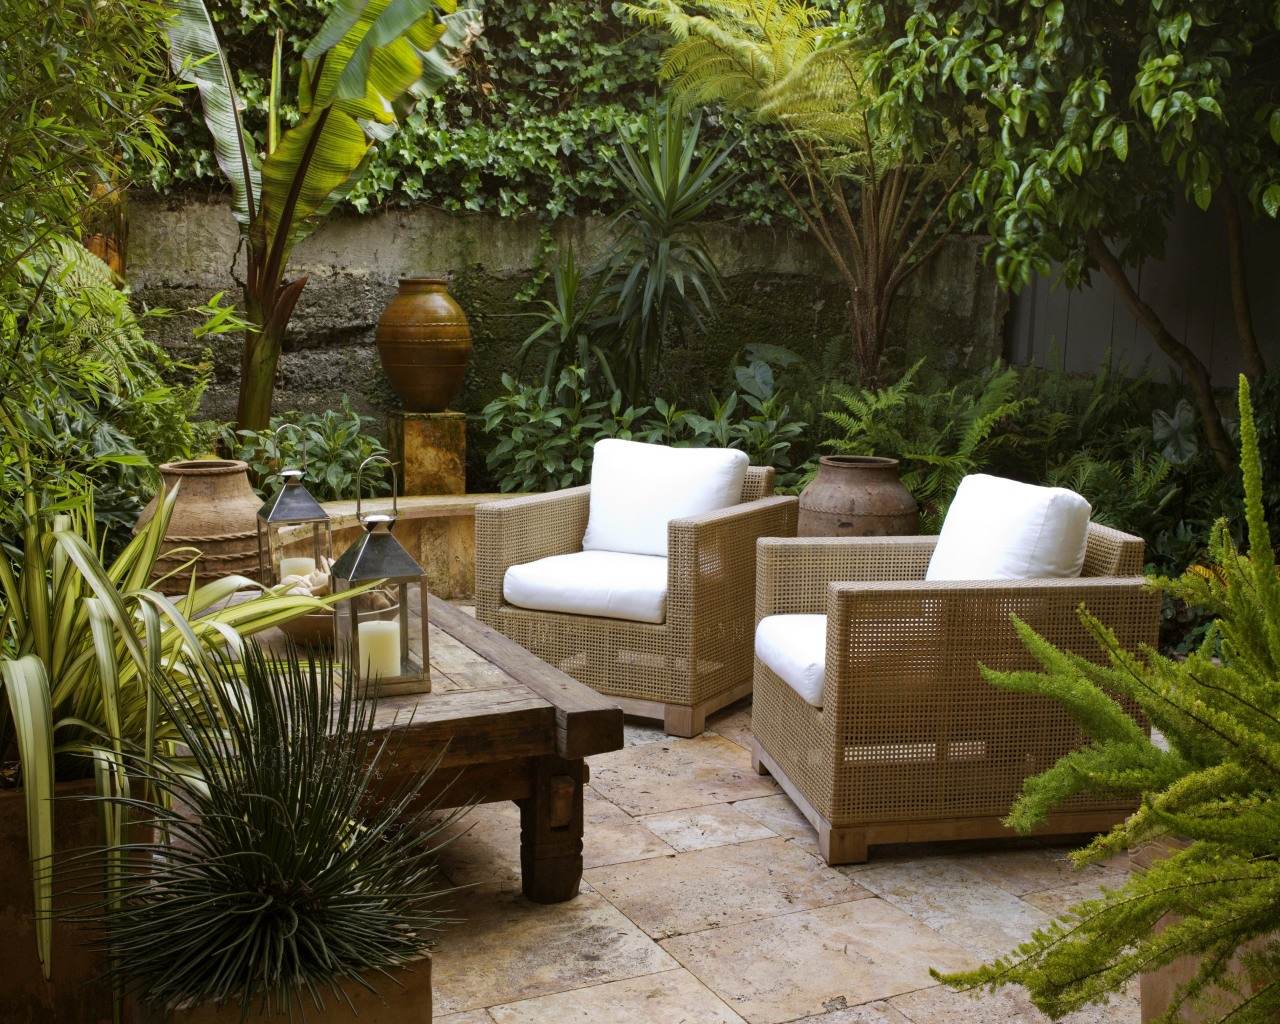 The grass may be damp but all weather backyard, courtyard, furniture, garden, landscaping, outdoor furniture, outdoor structure, patio, real estate, table, yard, brown